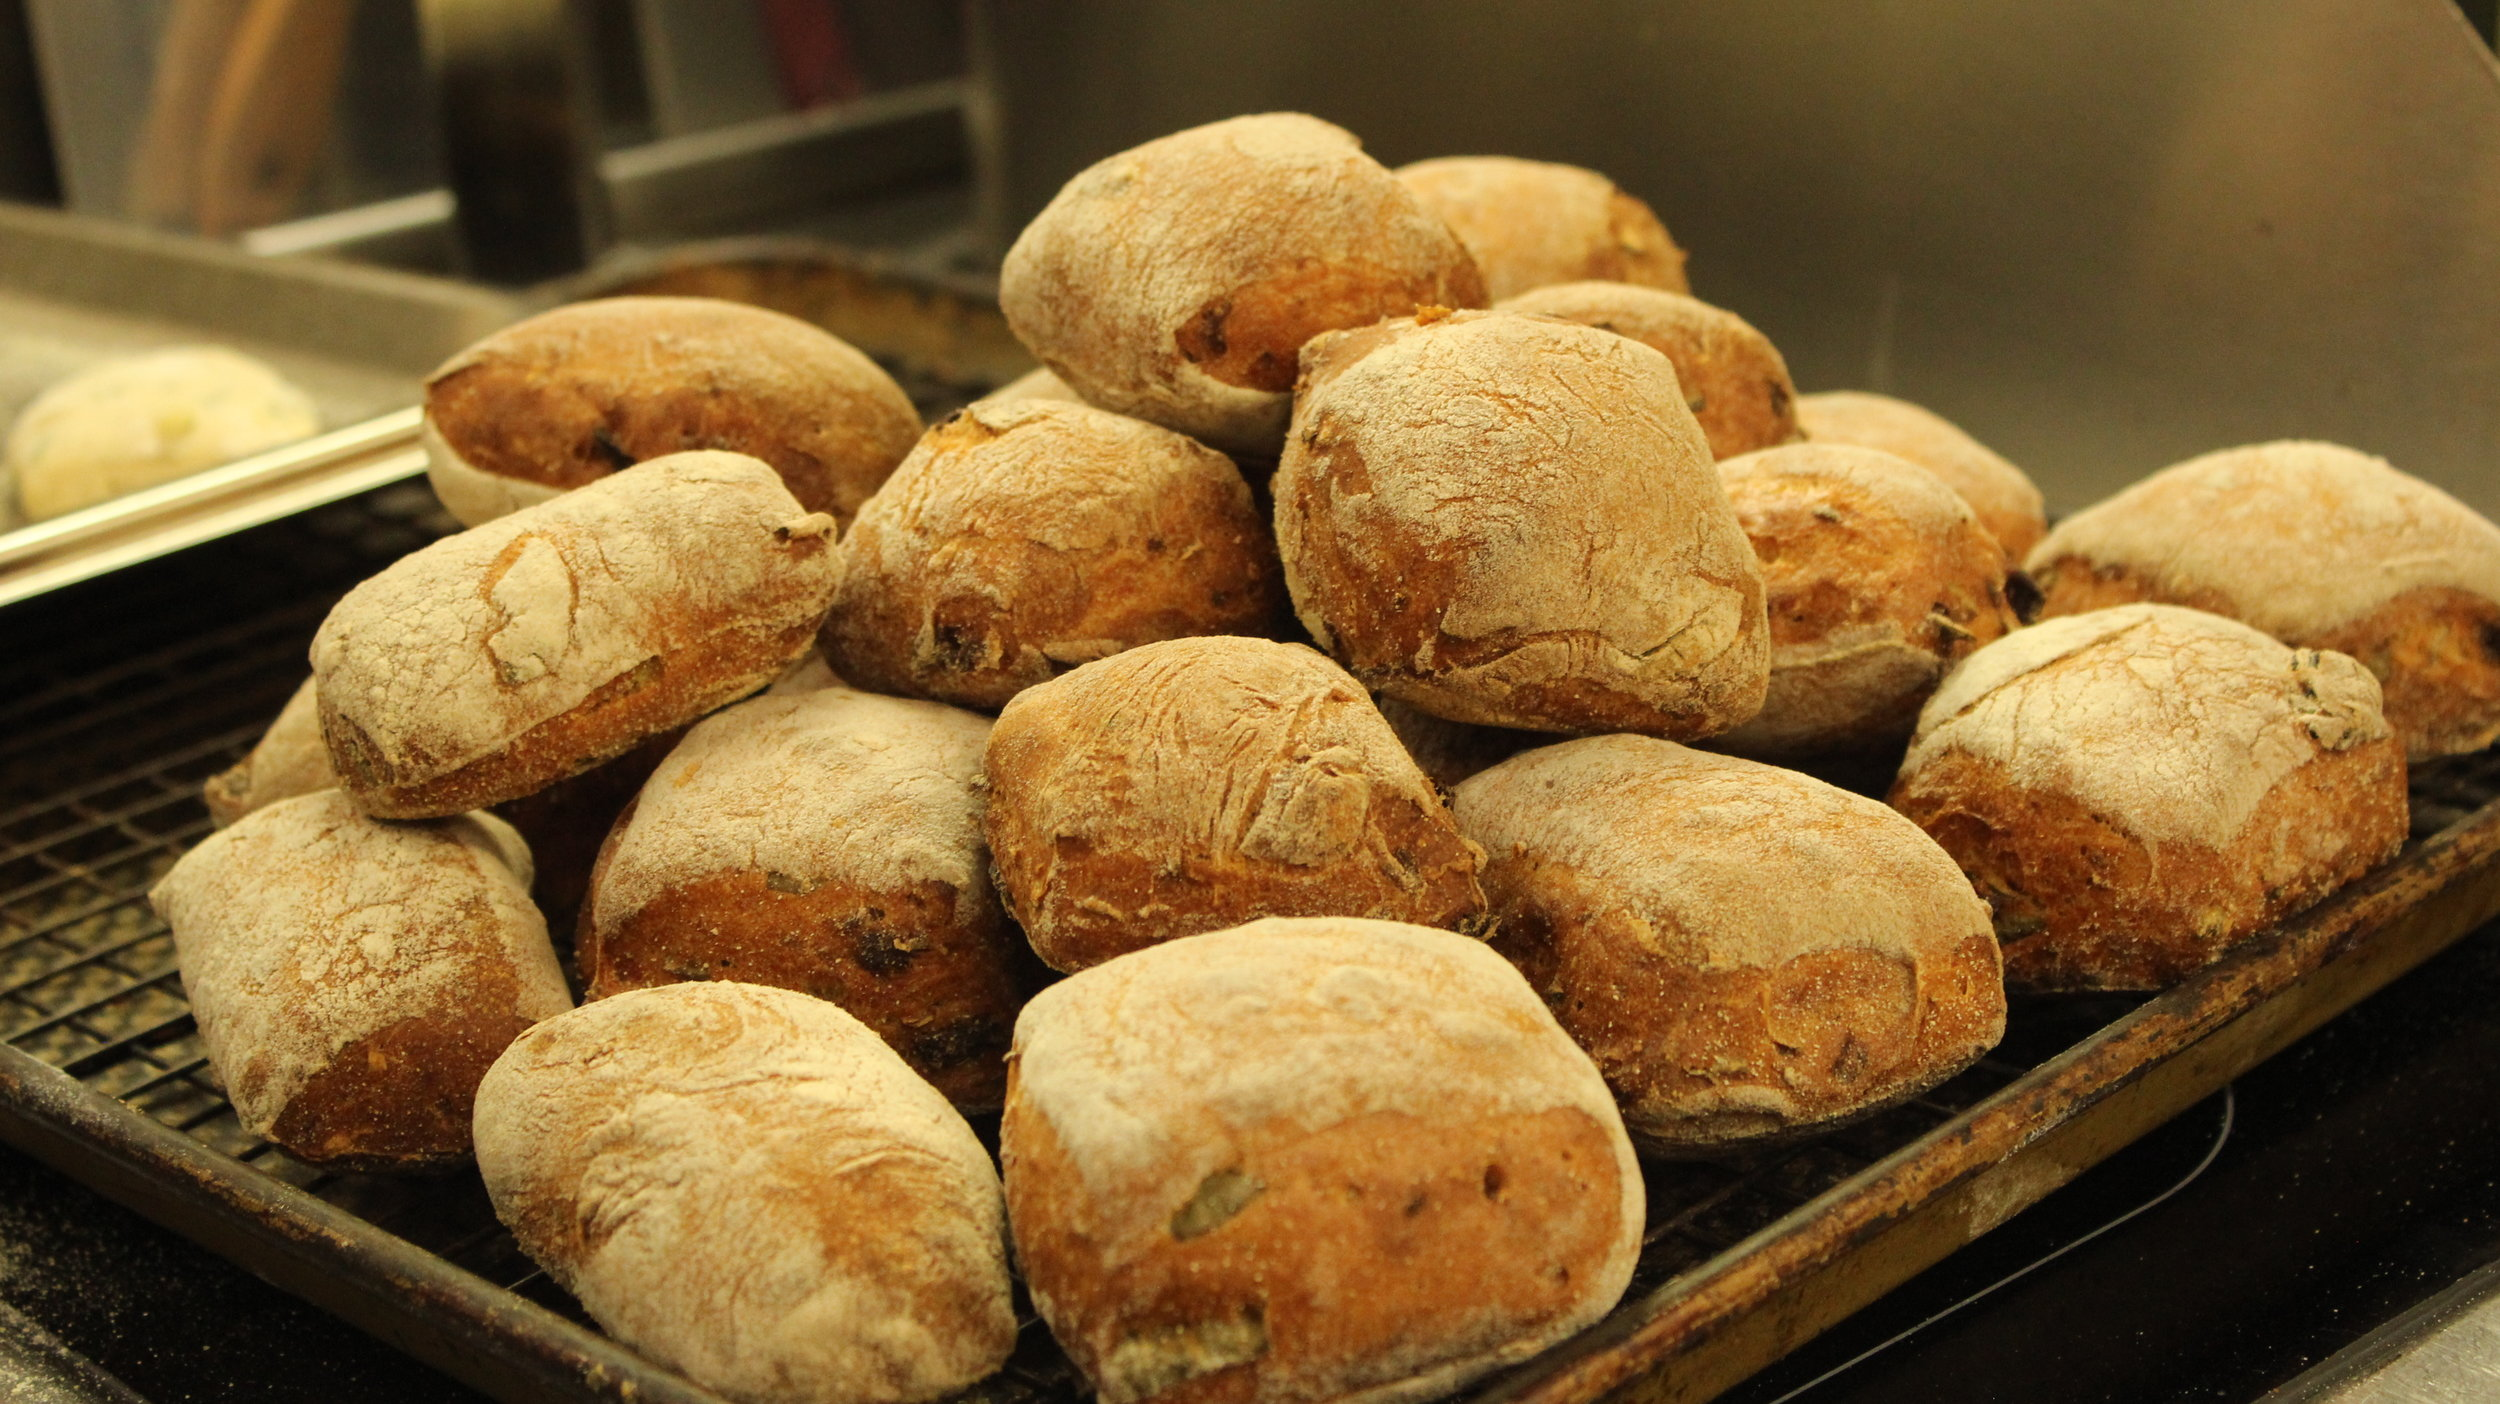 Rolls or Loaf - This recipe works for both.